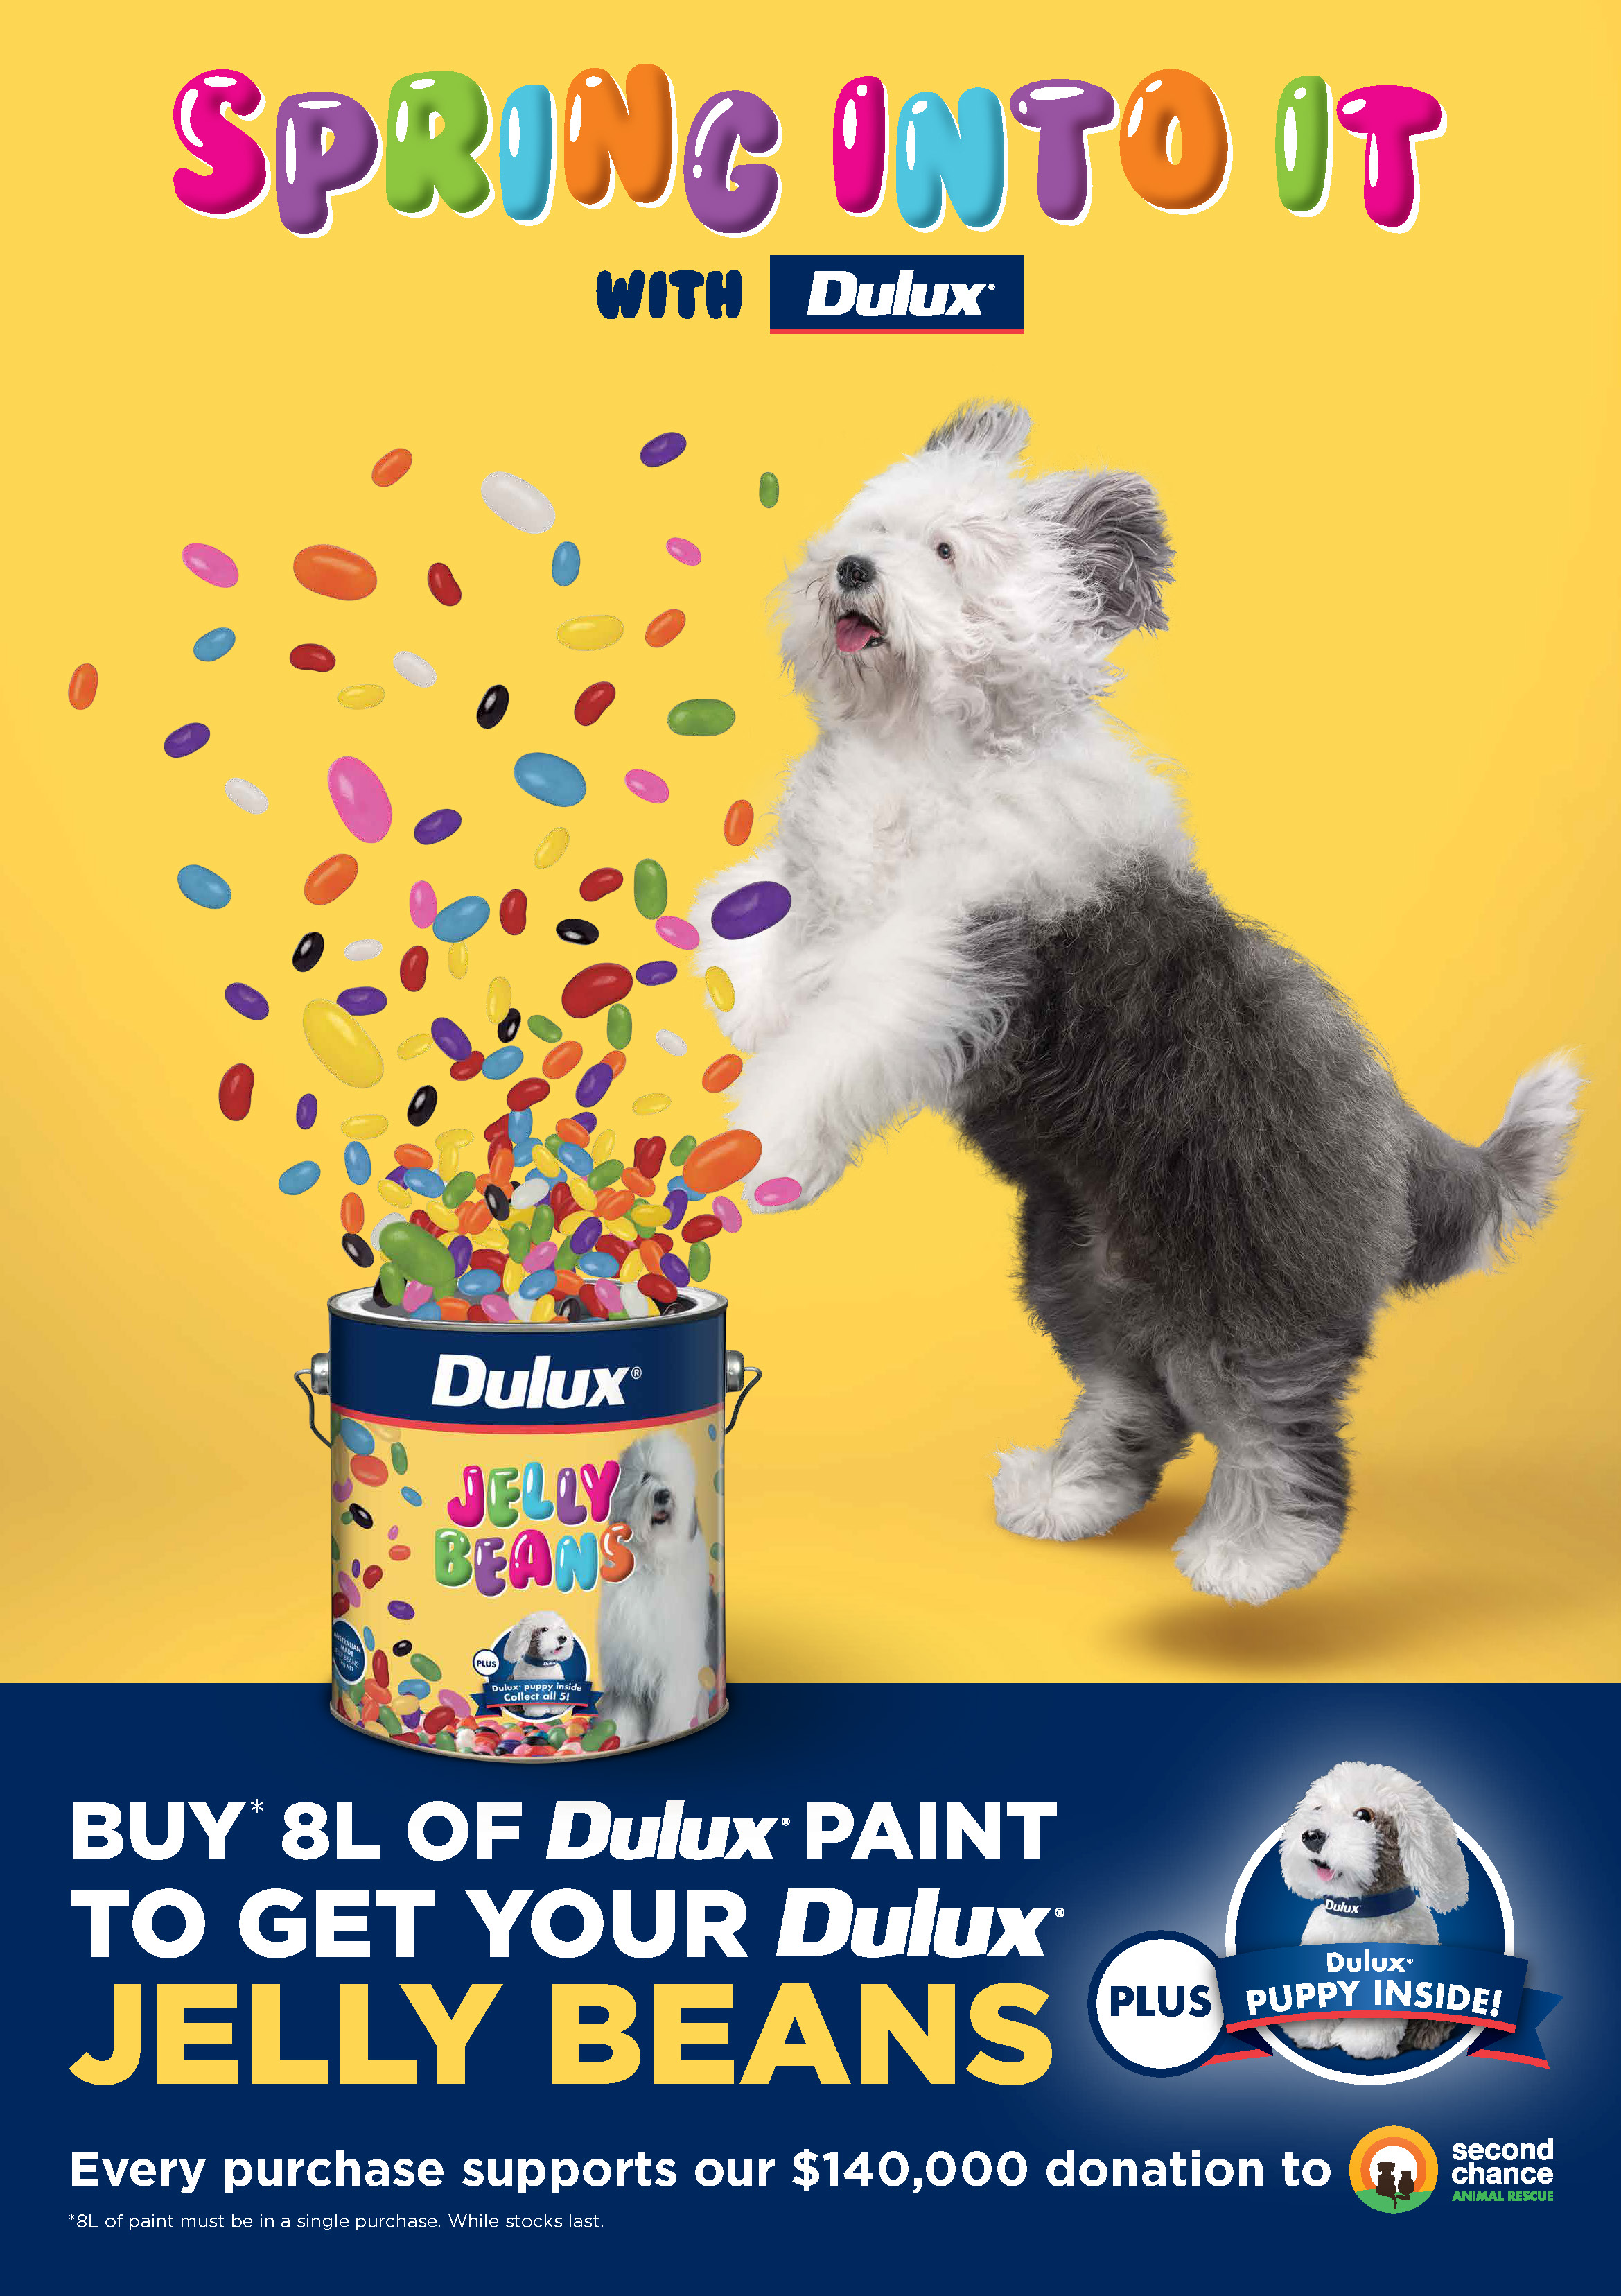 Dulux invites Australians to 'Spring into it' with new Dulux Jelly Beans campaign via Channel T